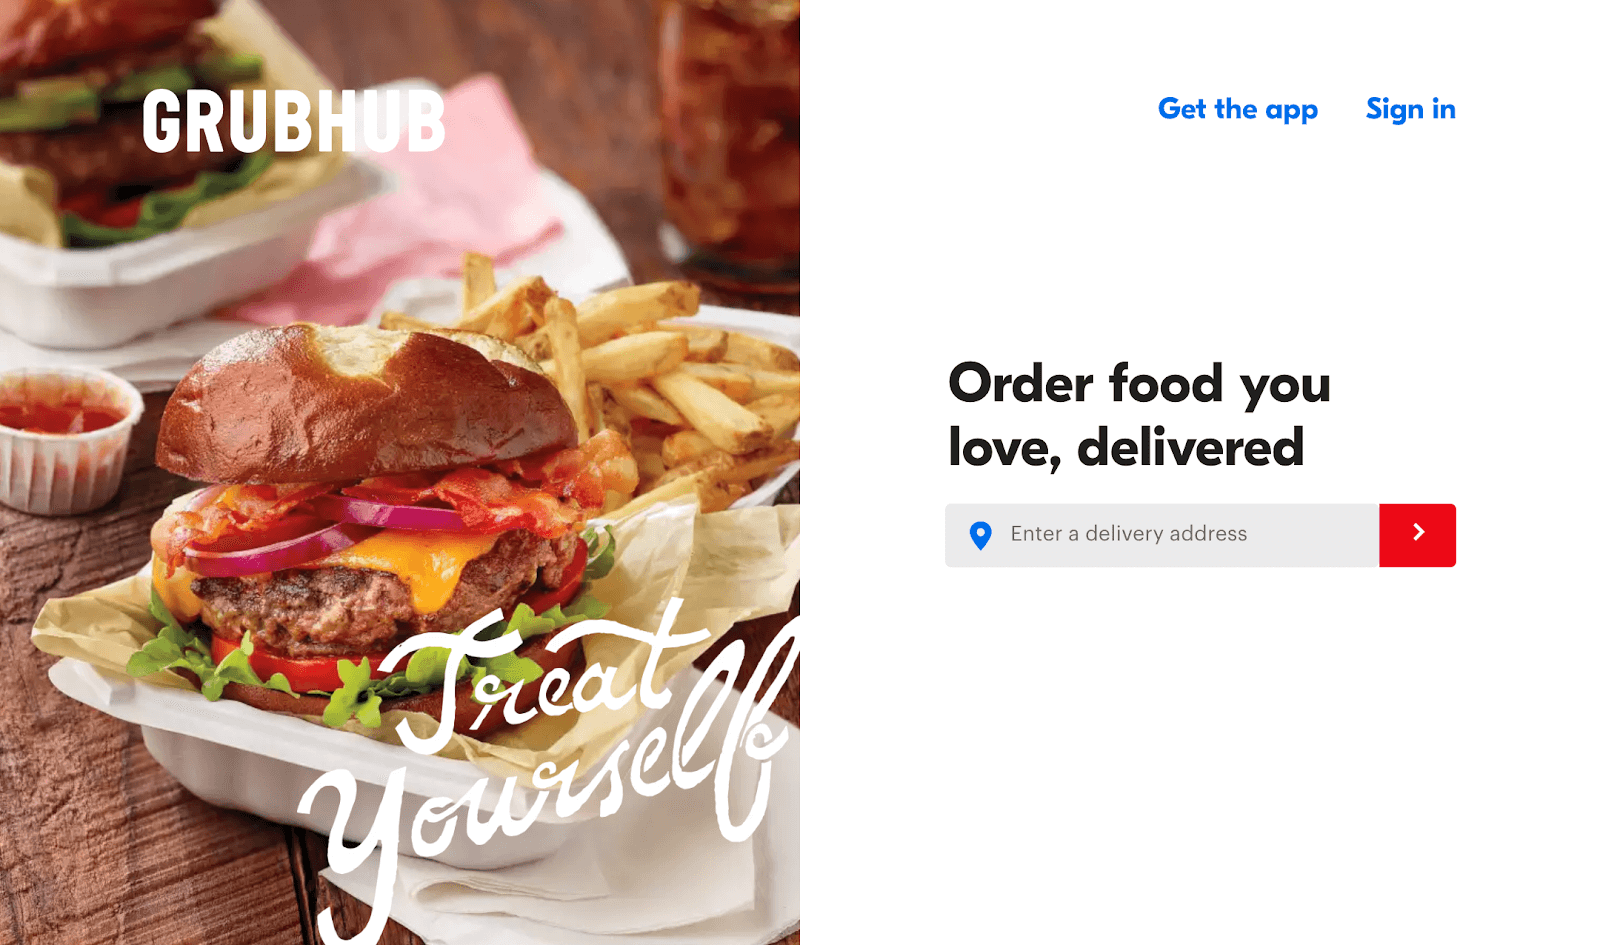 Fast Food Delivery: Grubhub homepage